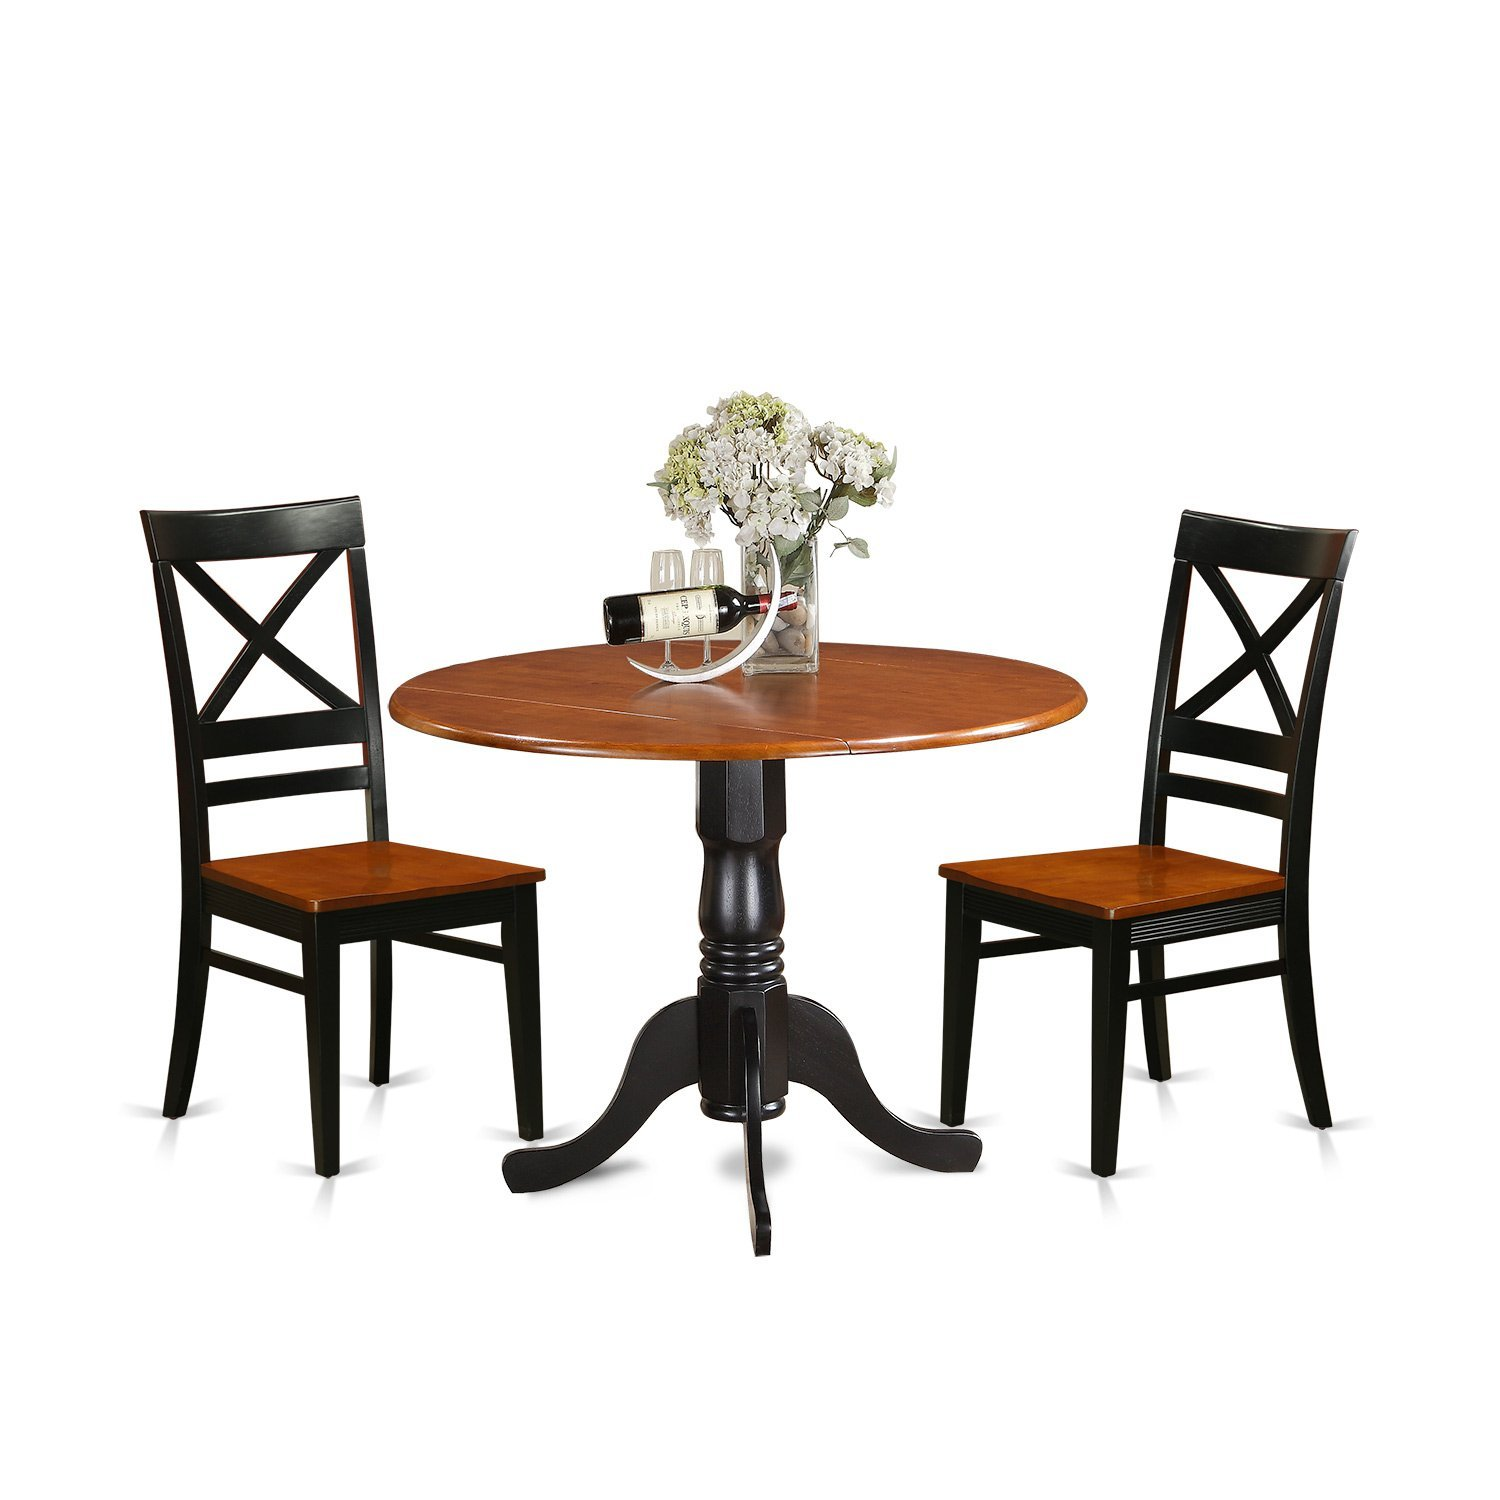 East West Furniture DLQU3-BCH-W 3 Piece Dining Table and 2 Wooden Kitchen Chairs Set Dublin